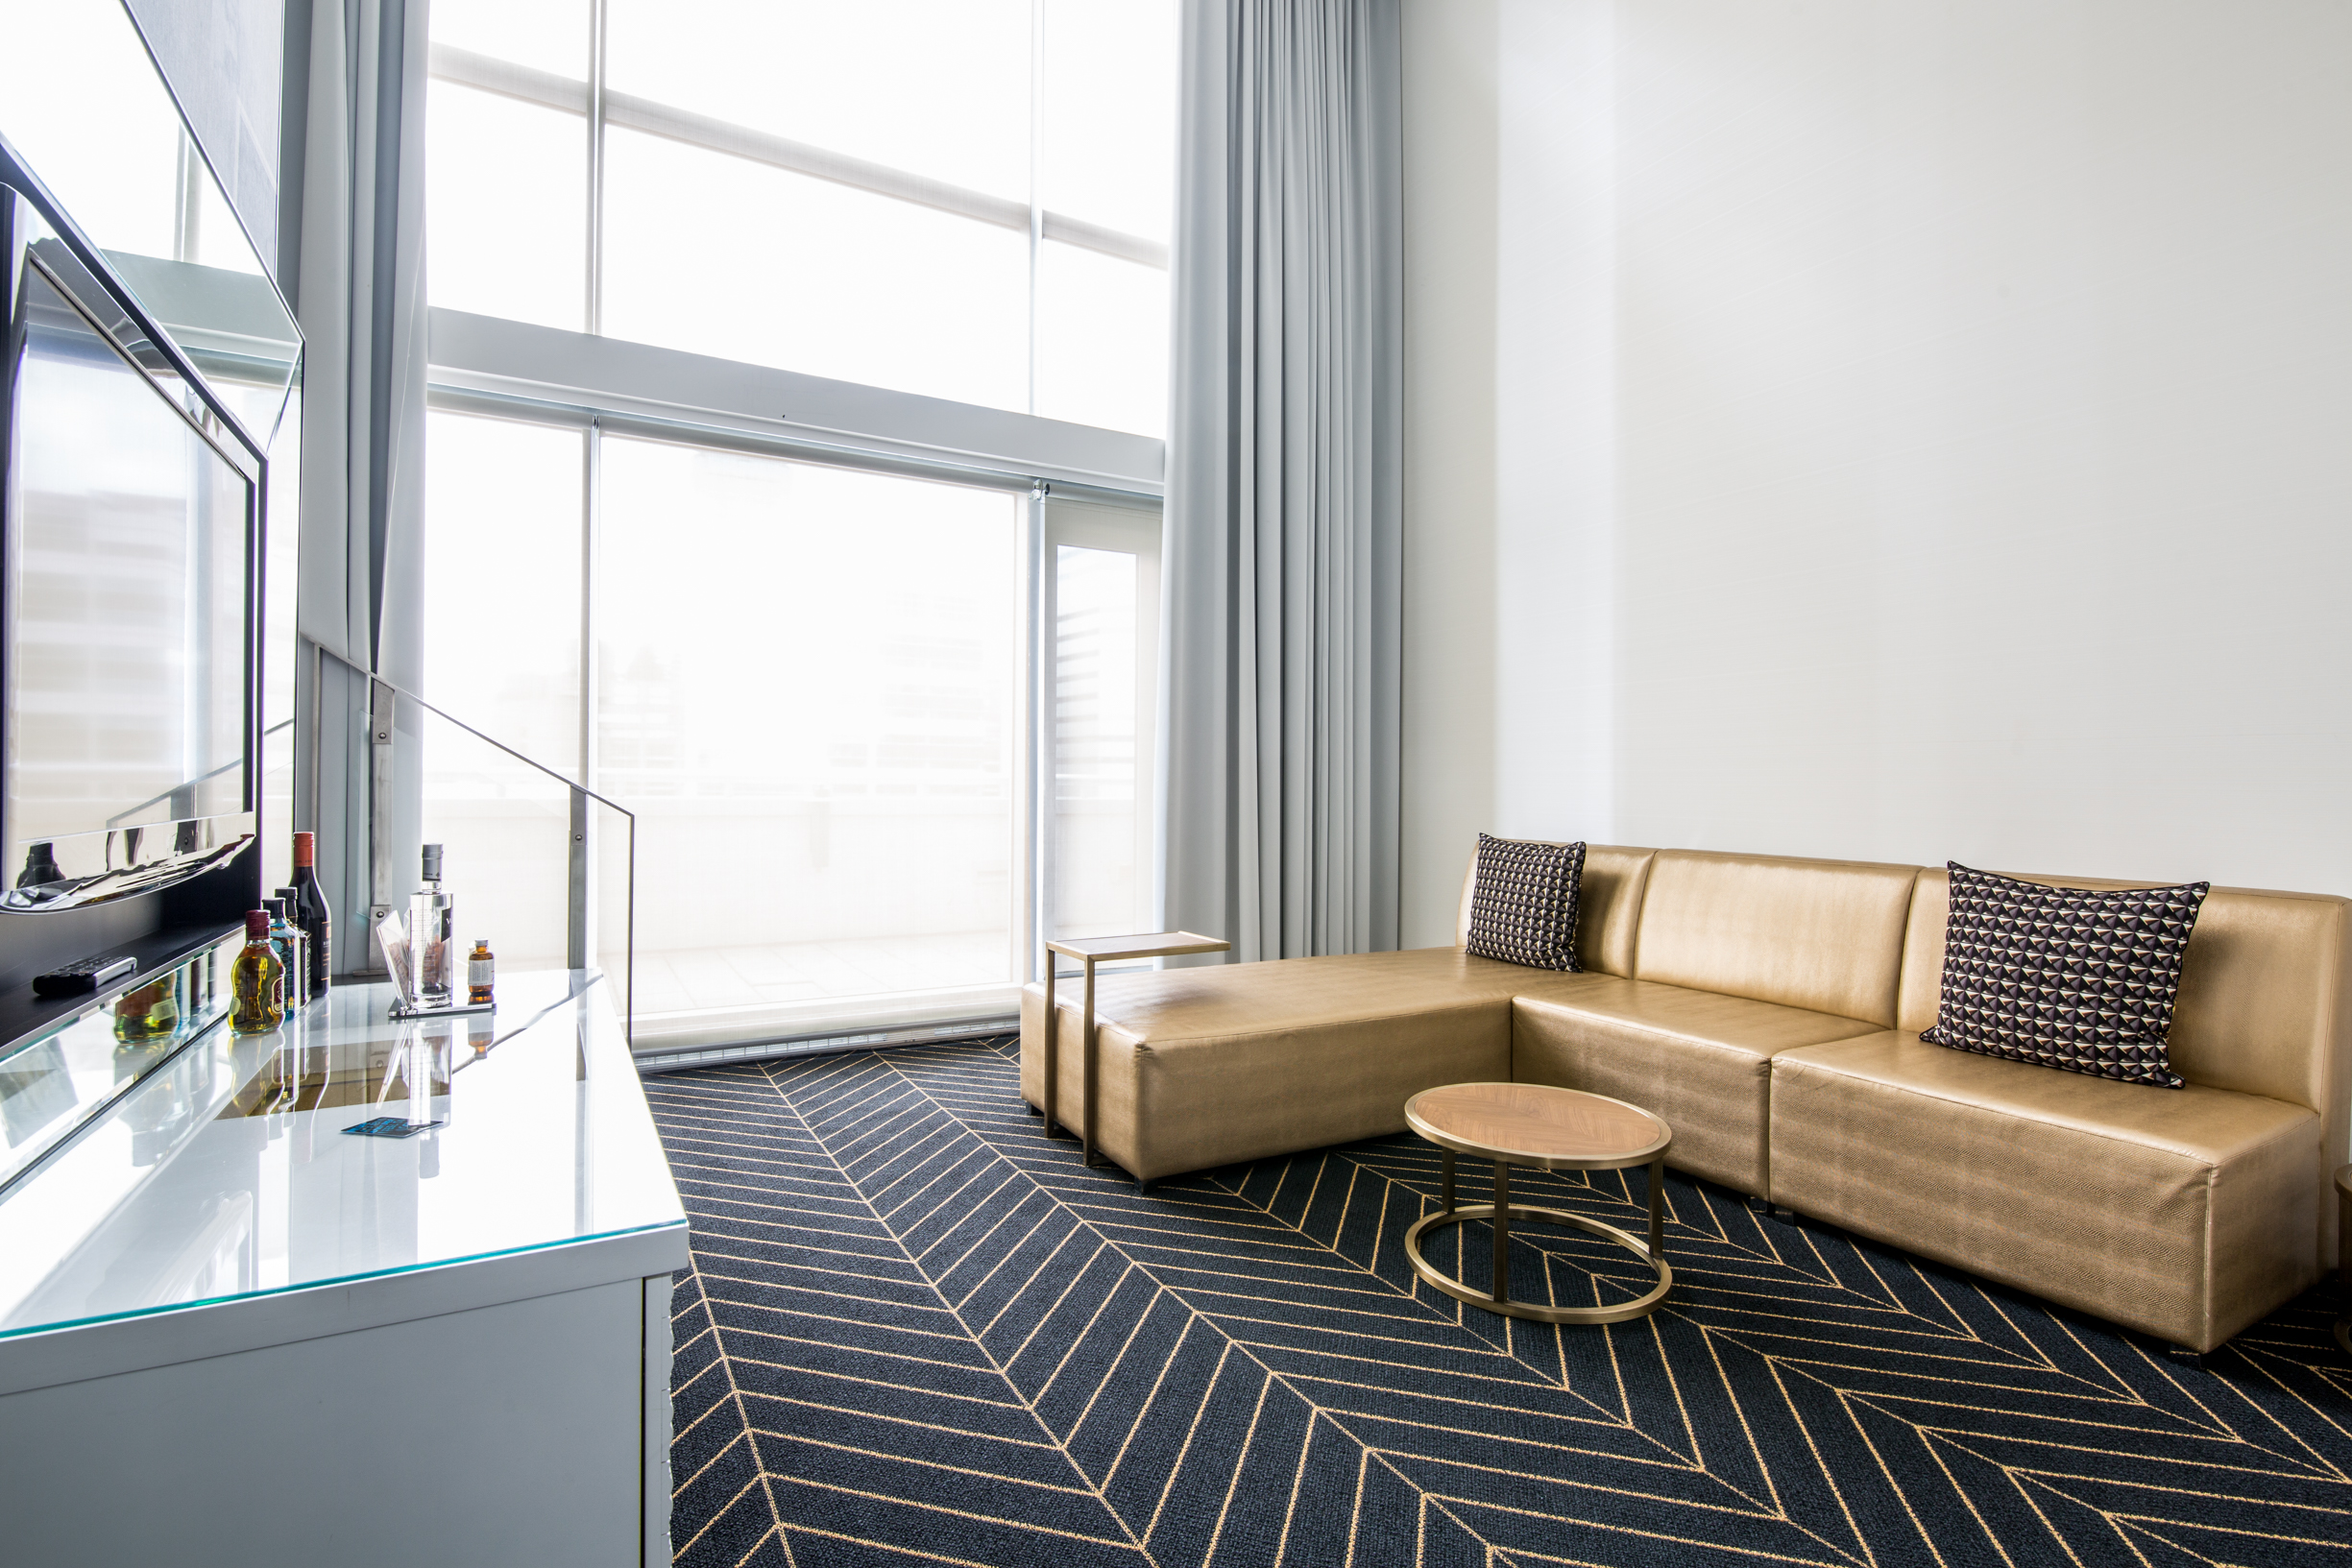 W hotel montreal by blogger mademoiselle jules mlle lifestyle